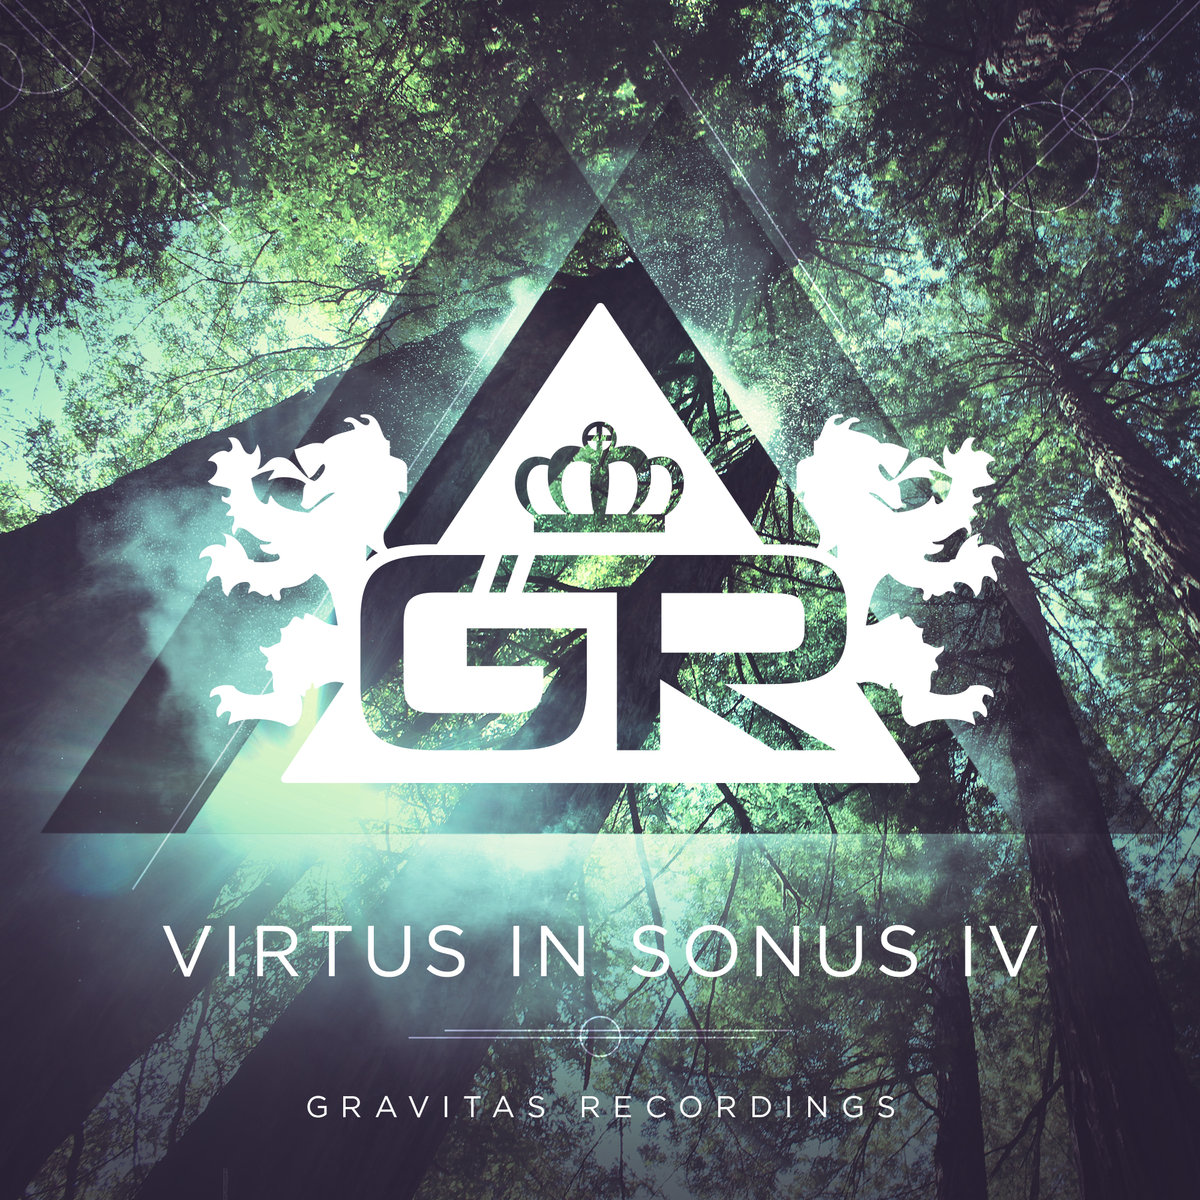 The Digital Connection - Architype @ 'Virtus In Sonus IV' album (Austin)